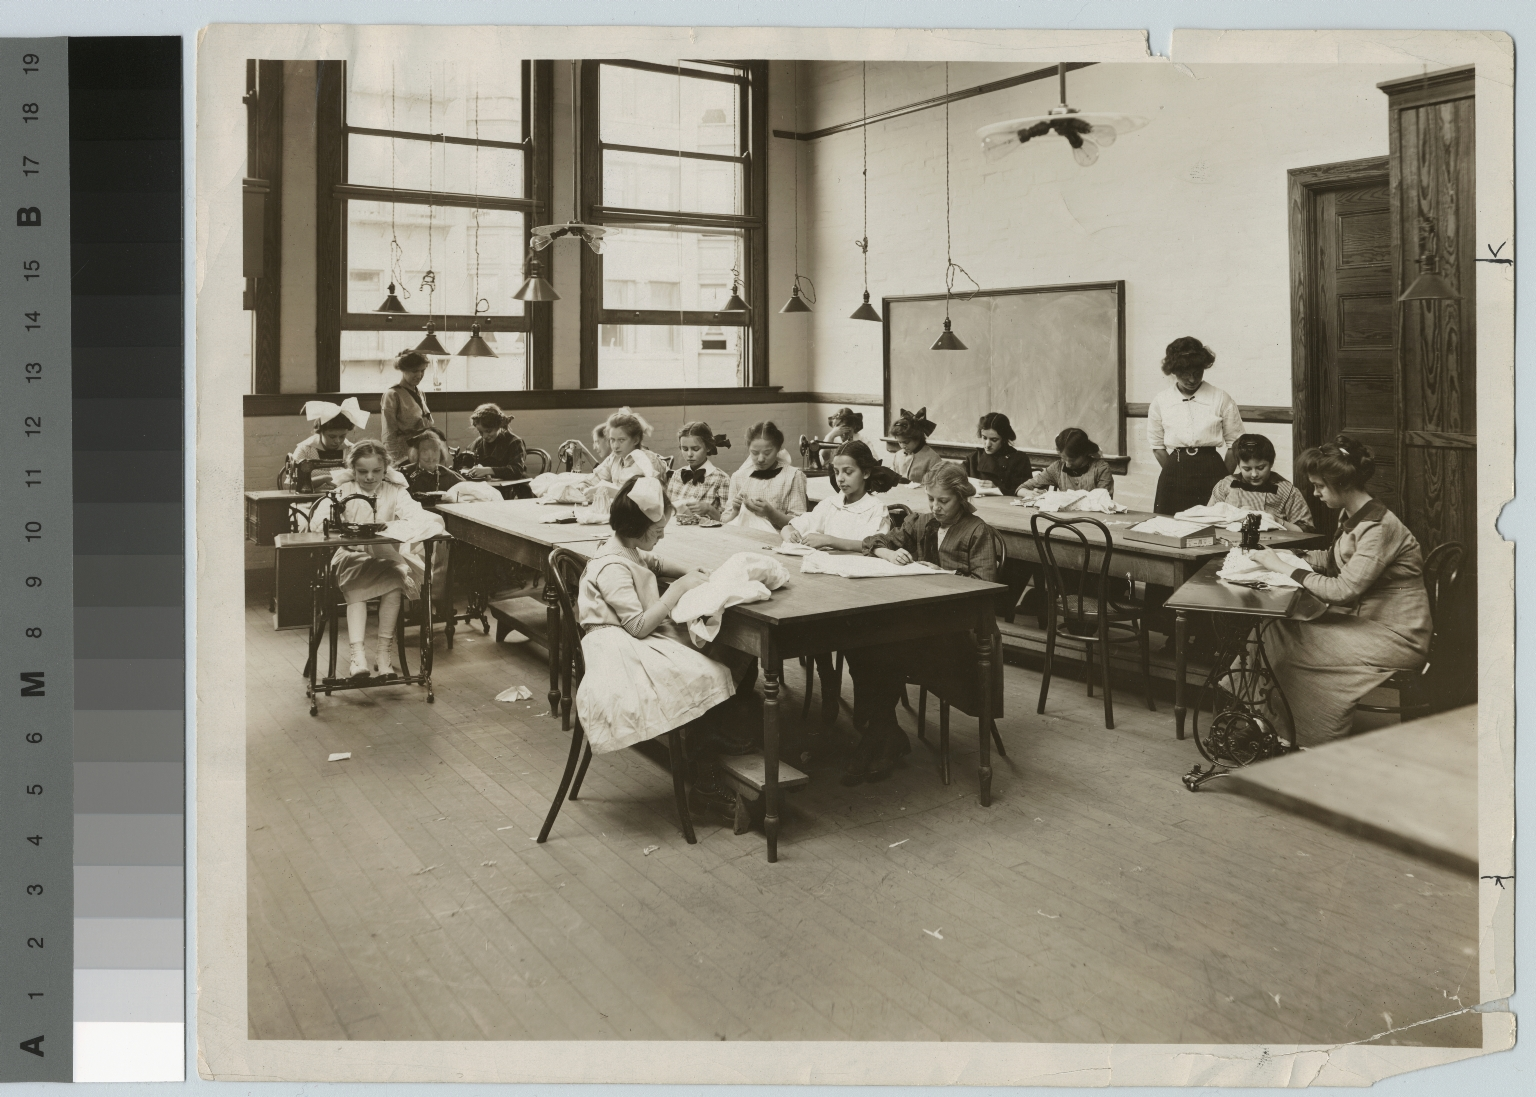 Students teaching a sewing class for young girls, Department of Household Arts and Sciences, Rochester Athenaeum and Mechanics Institute [1900-1920]